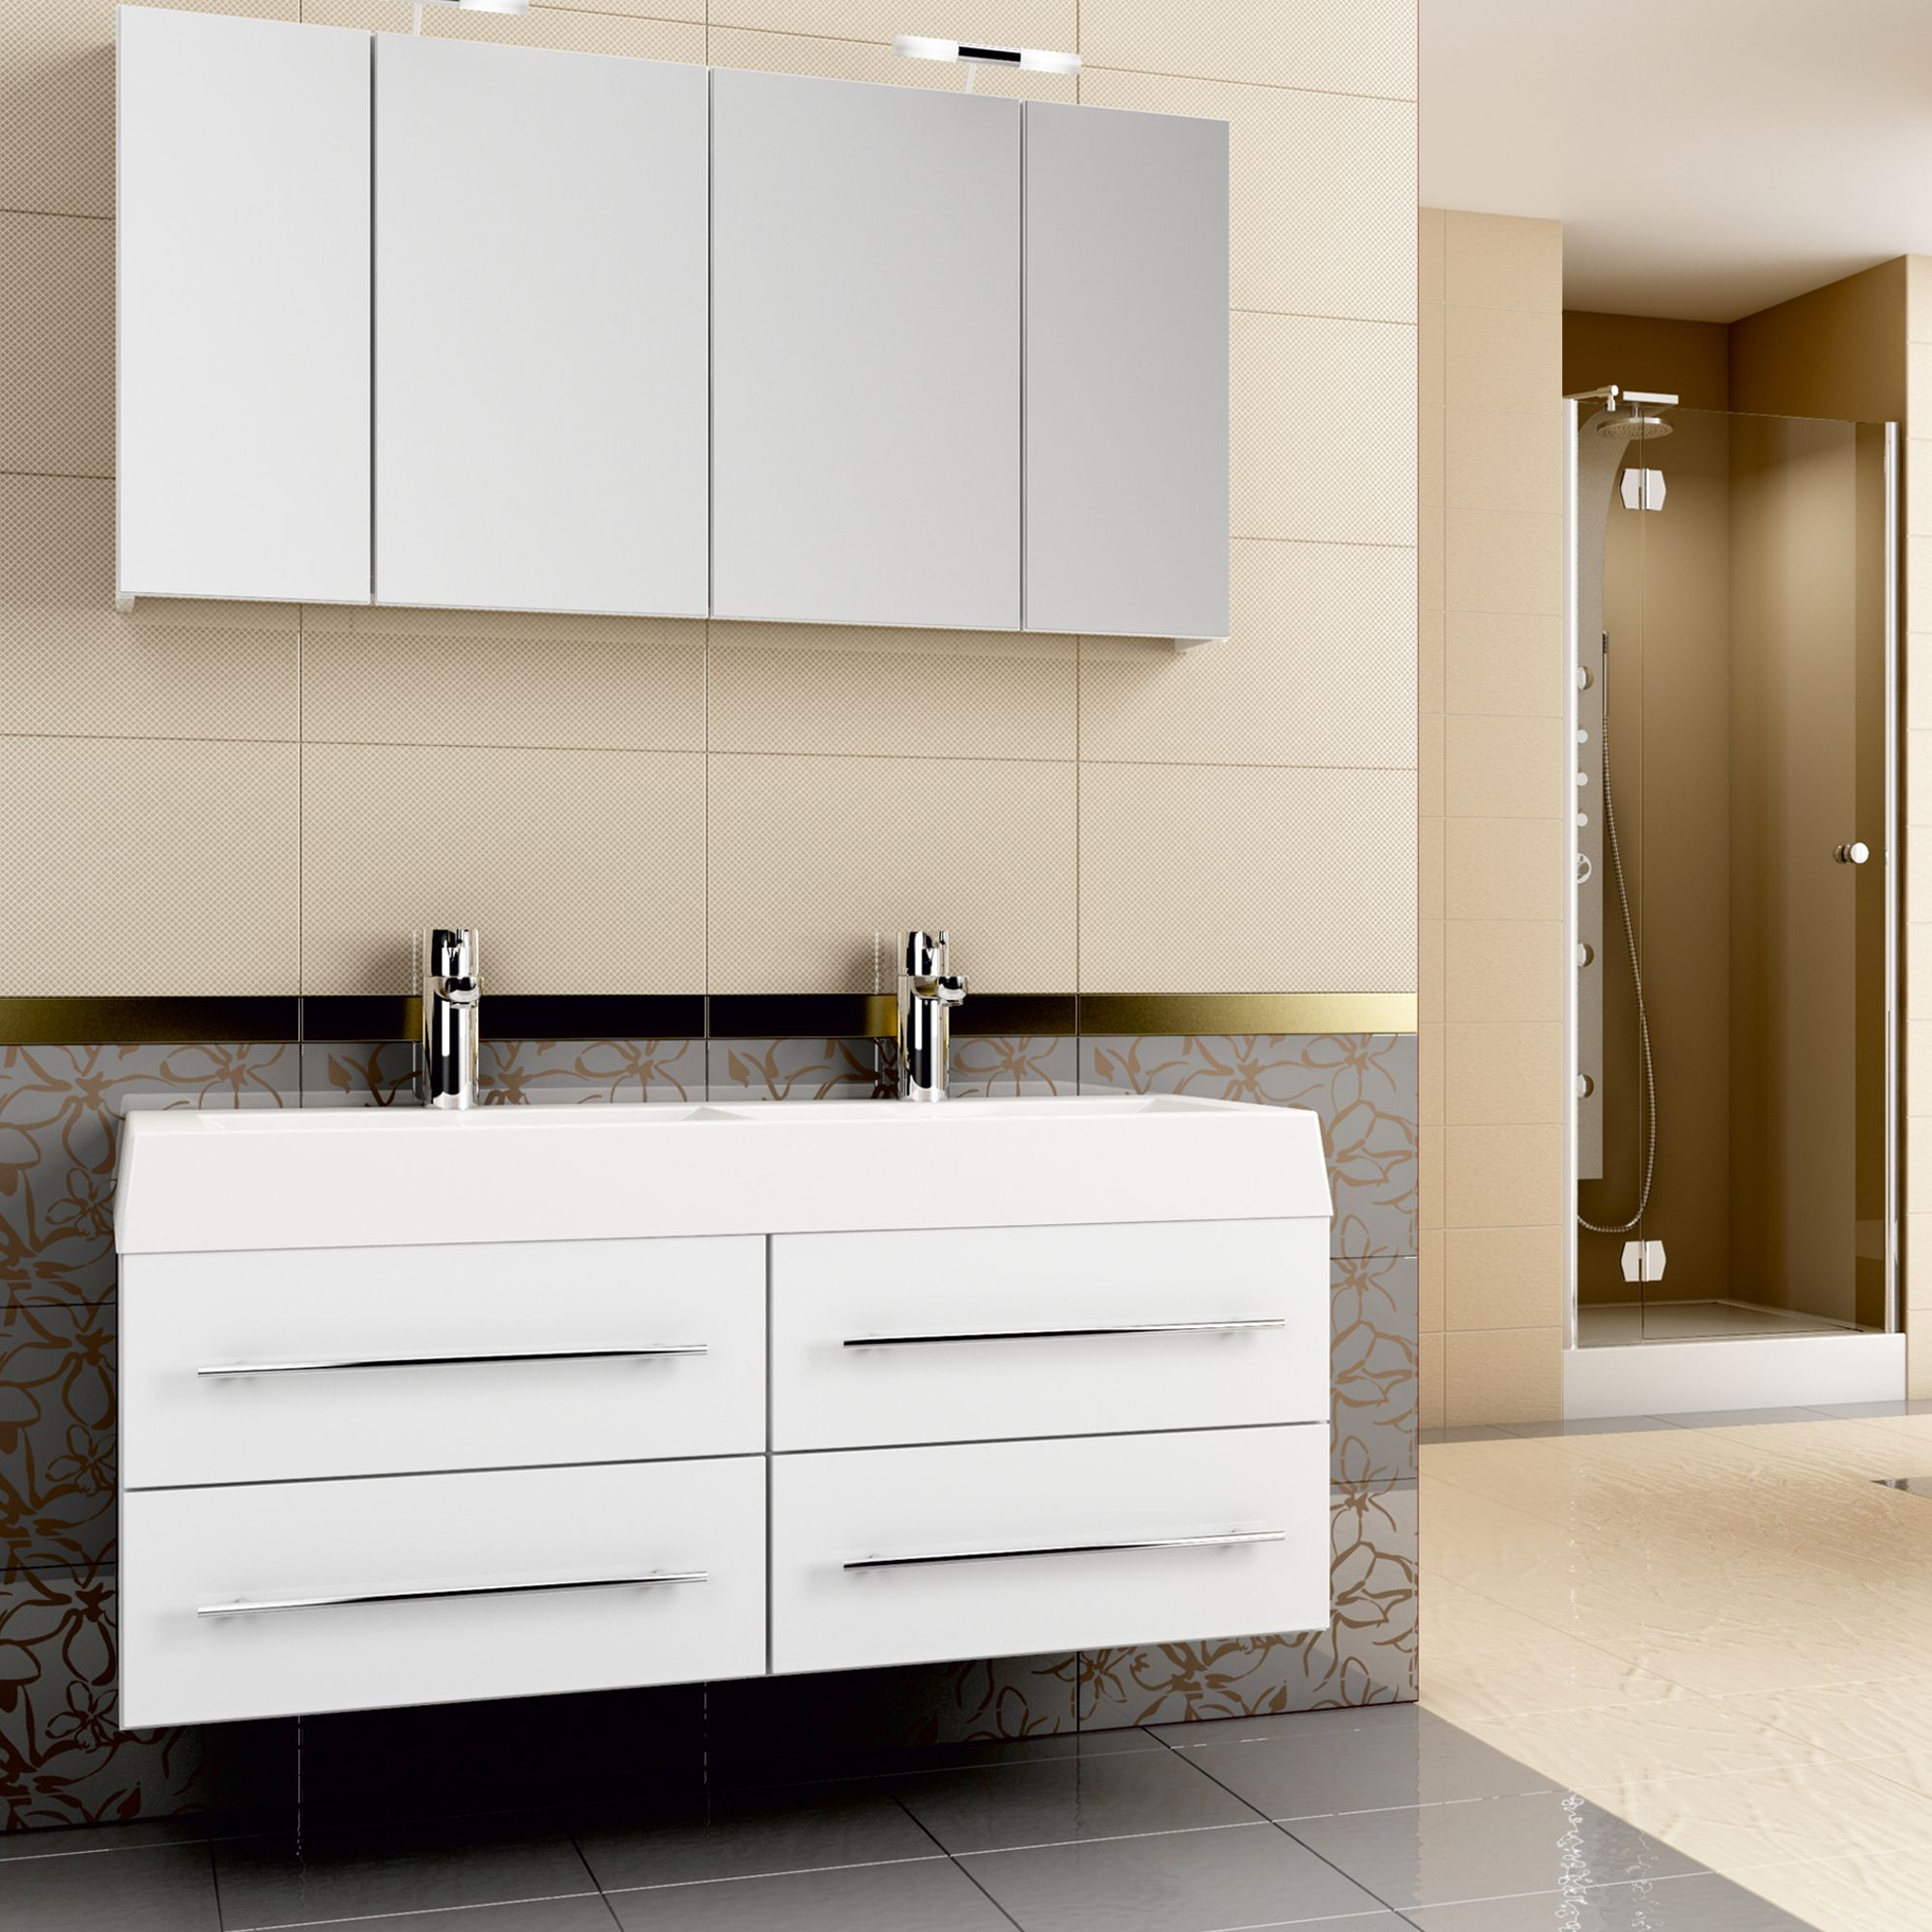 Pin By Badezimmer Ideen Eintagamsee On Gute Badideen Vanity Double Vanity Bathroom